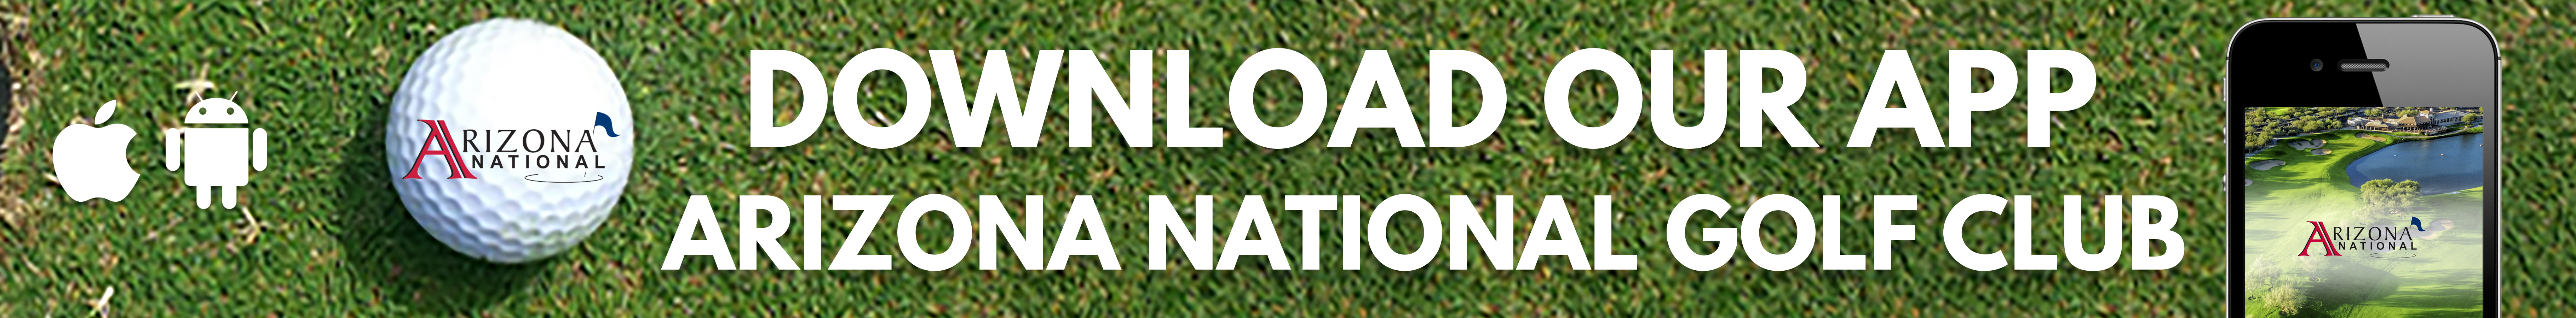 Arizona National Golf App